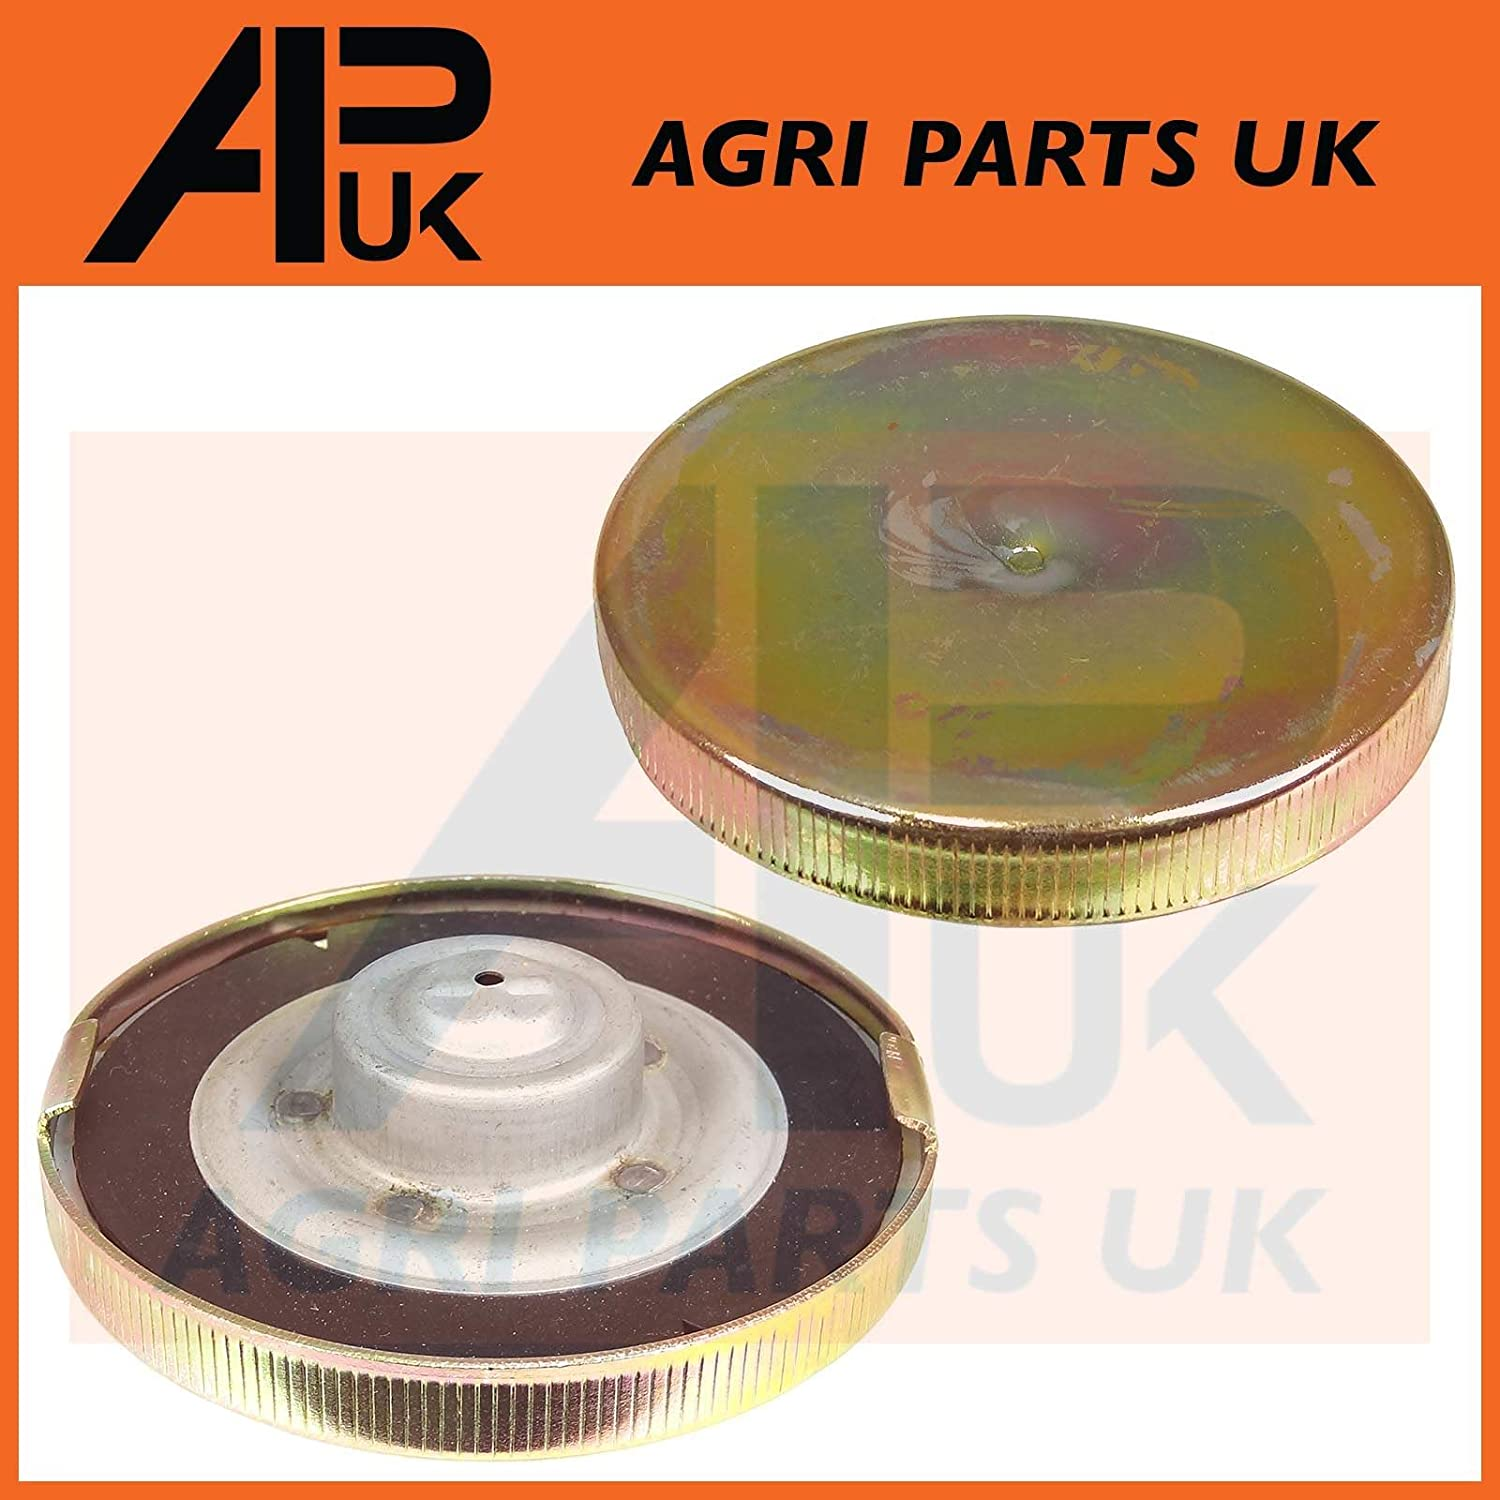 APUK Fuel Tank Cap compatible with Leyland Marshall 245 272 344 384 Nuffield 4DM 3//45 4//65 Tractor